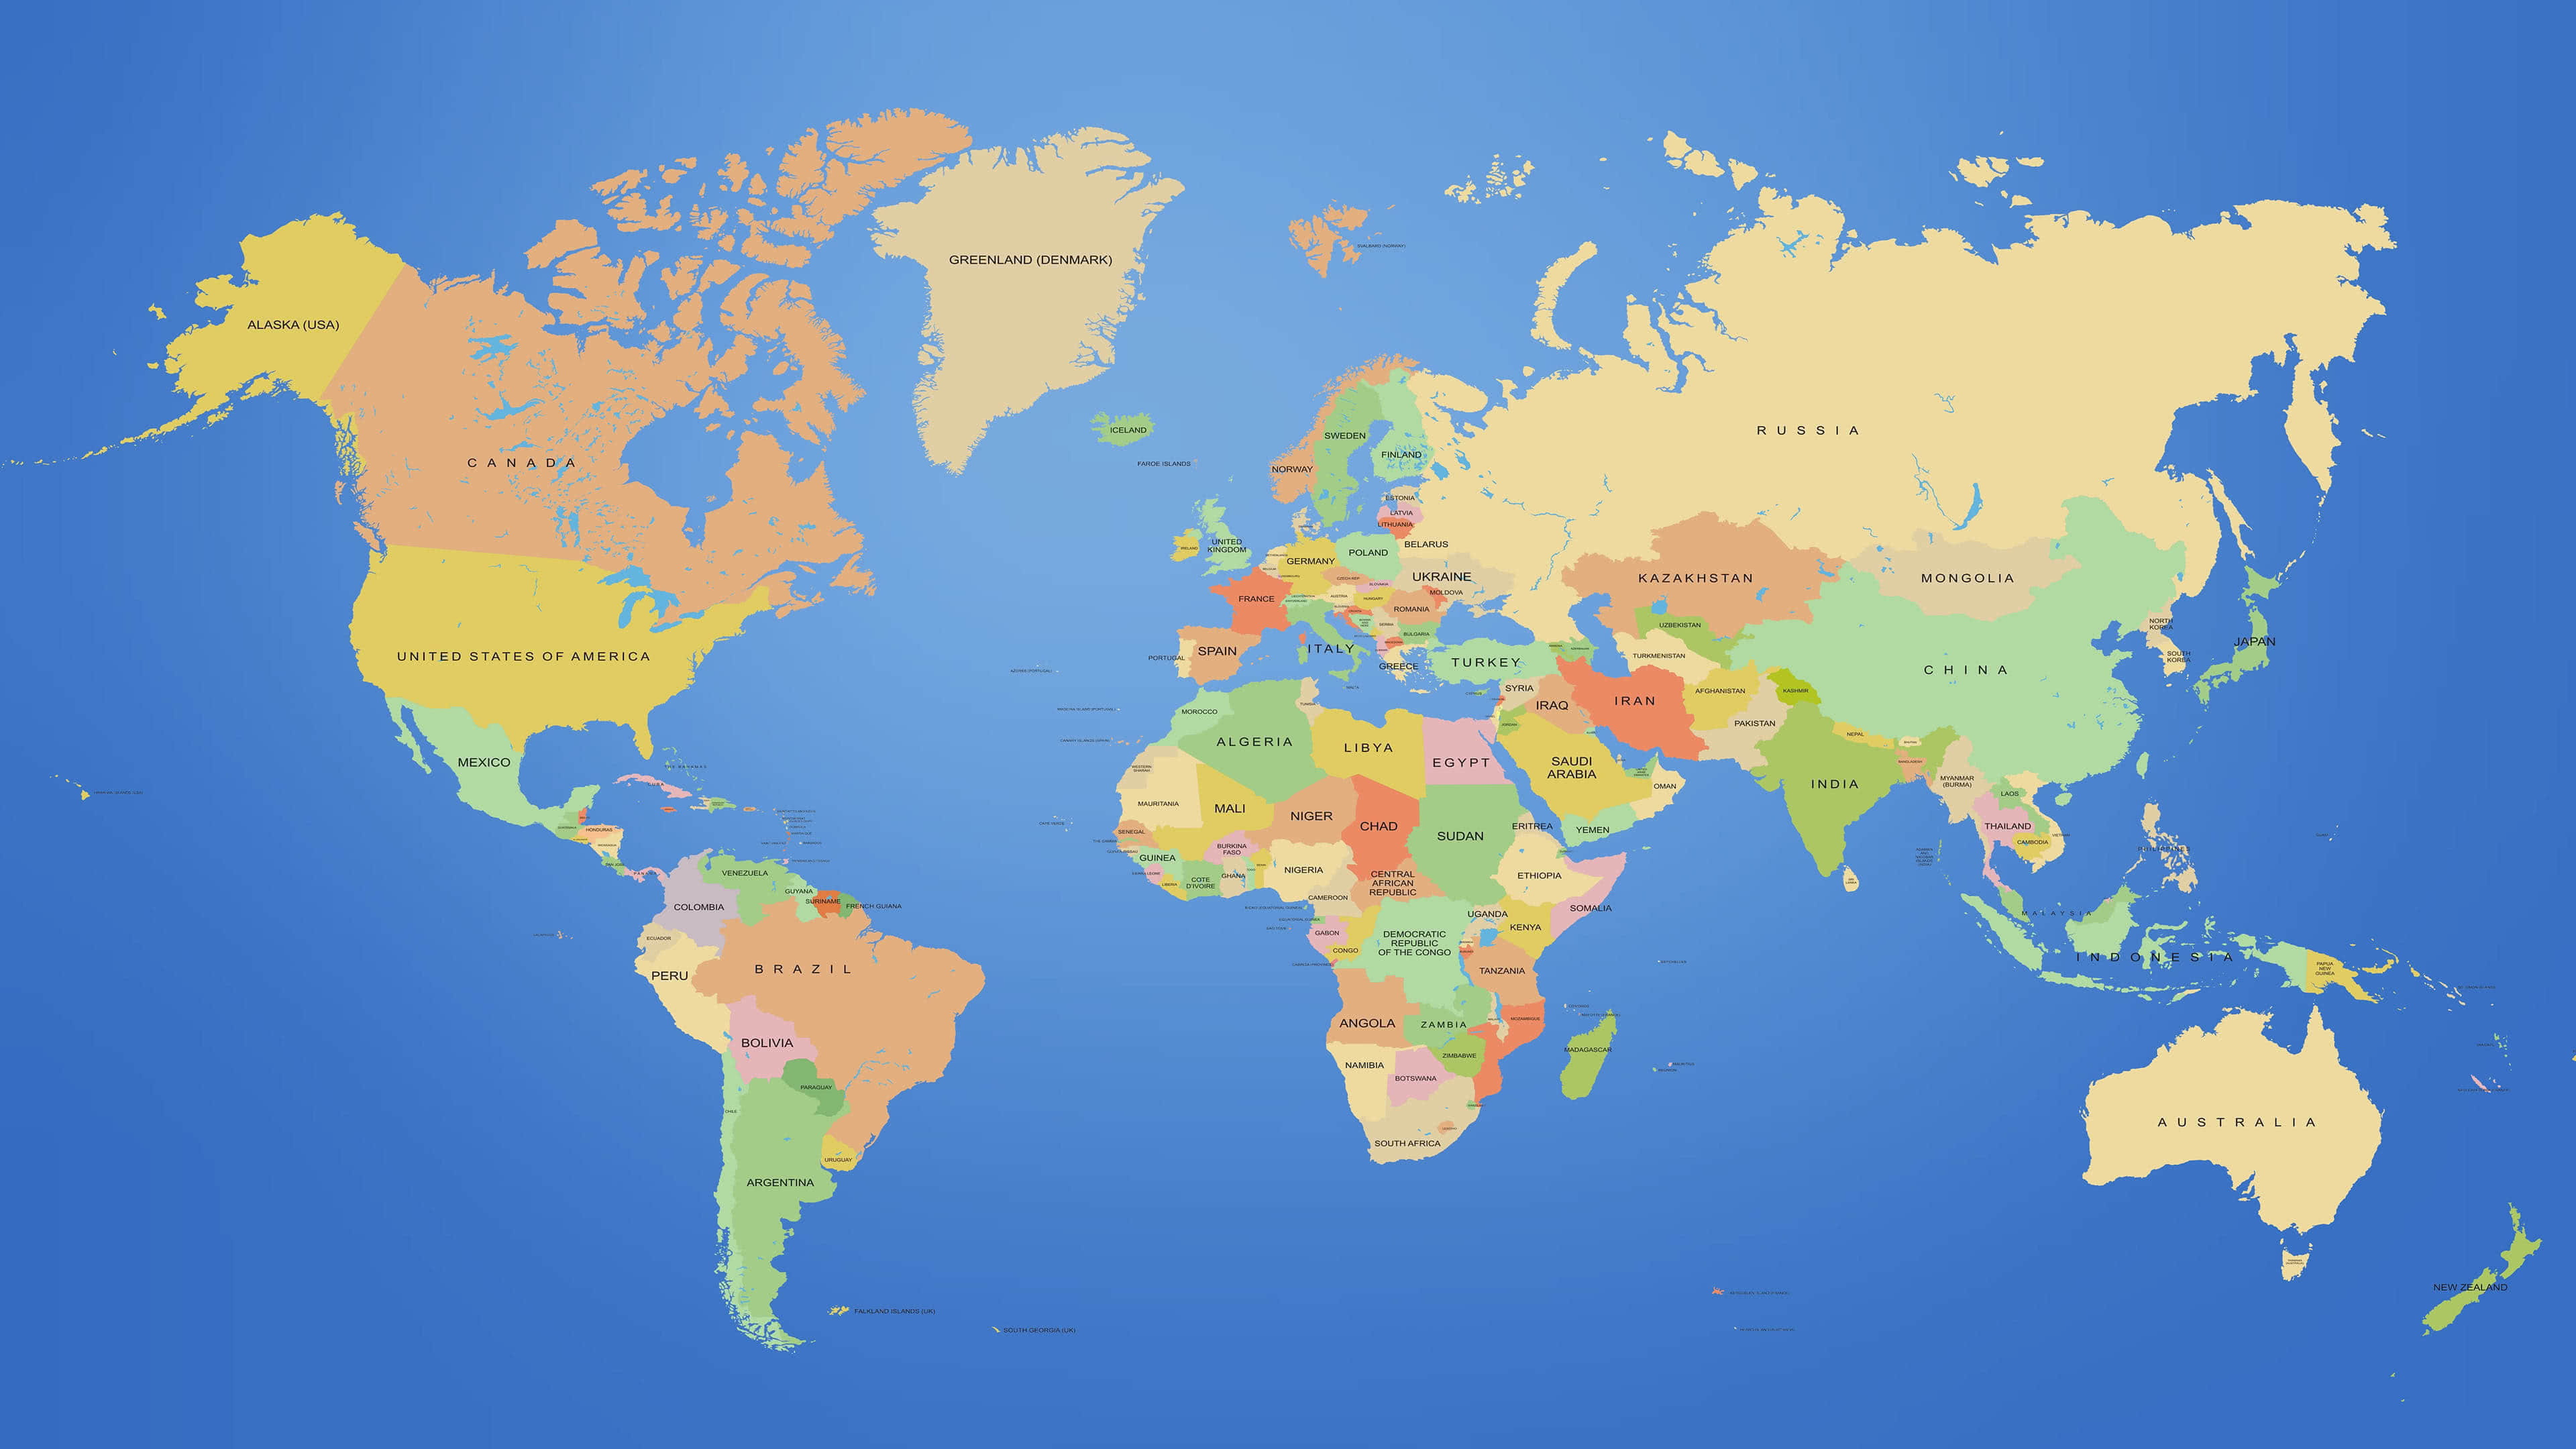 world map with countries uhd 4k wallpaper